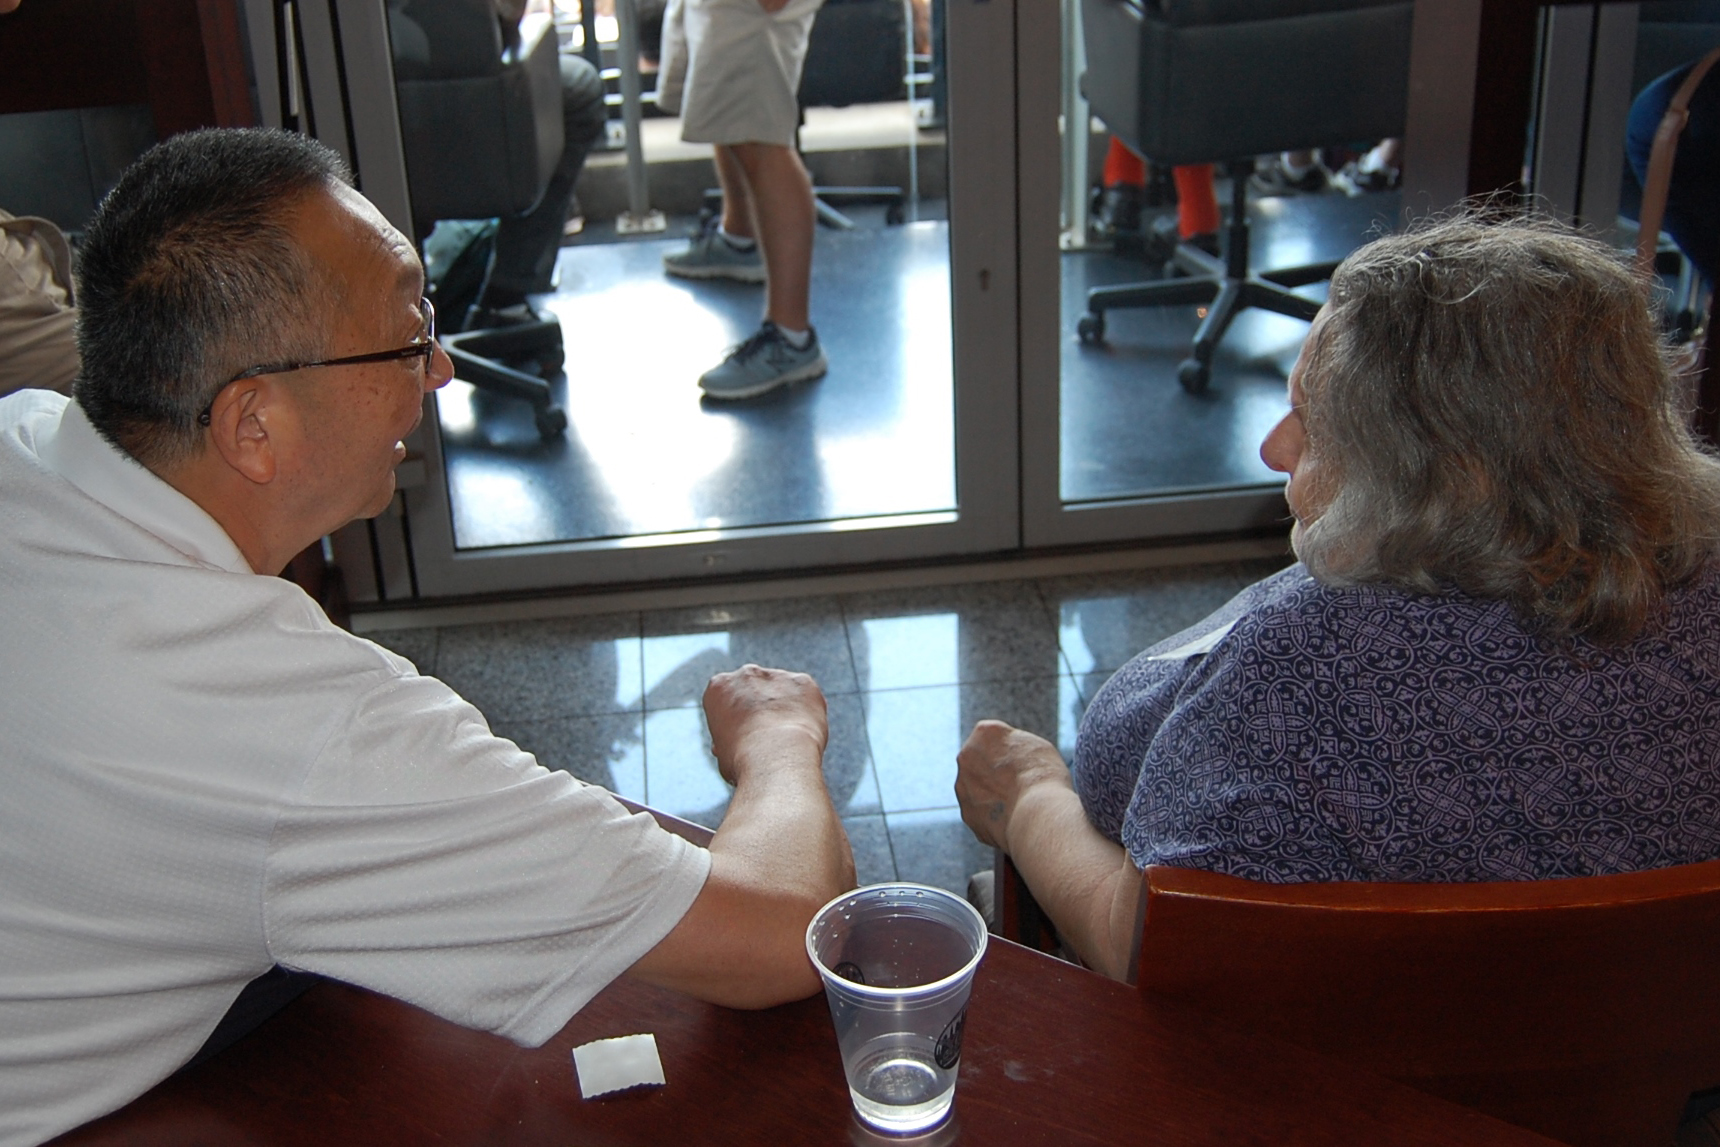 Michael Ego, professor of human development and family studies at UConn's Stamford campus, with a client in the Baseball Reminiscence Program at River House Adult Care Center in Cos Cobb, Connecticut, during a trip to Citi Field in New York City for a Mets game. (Kenneth Best/UConn Photo)